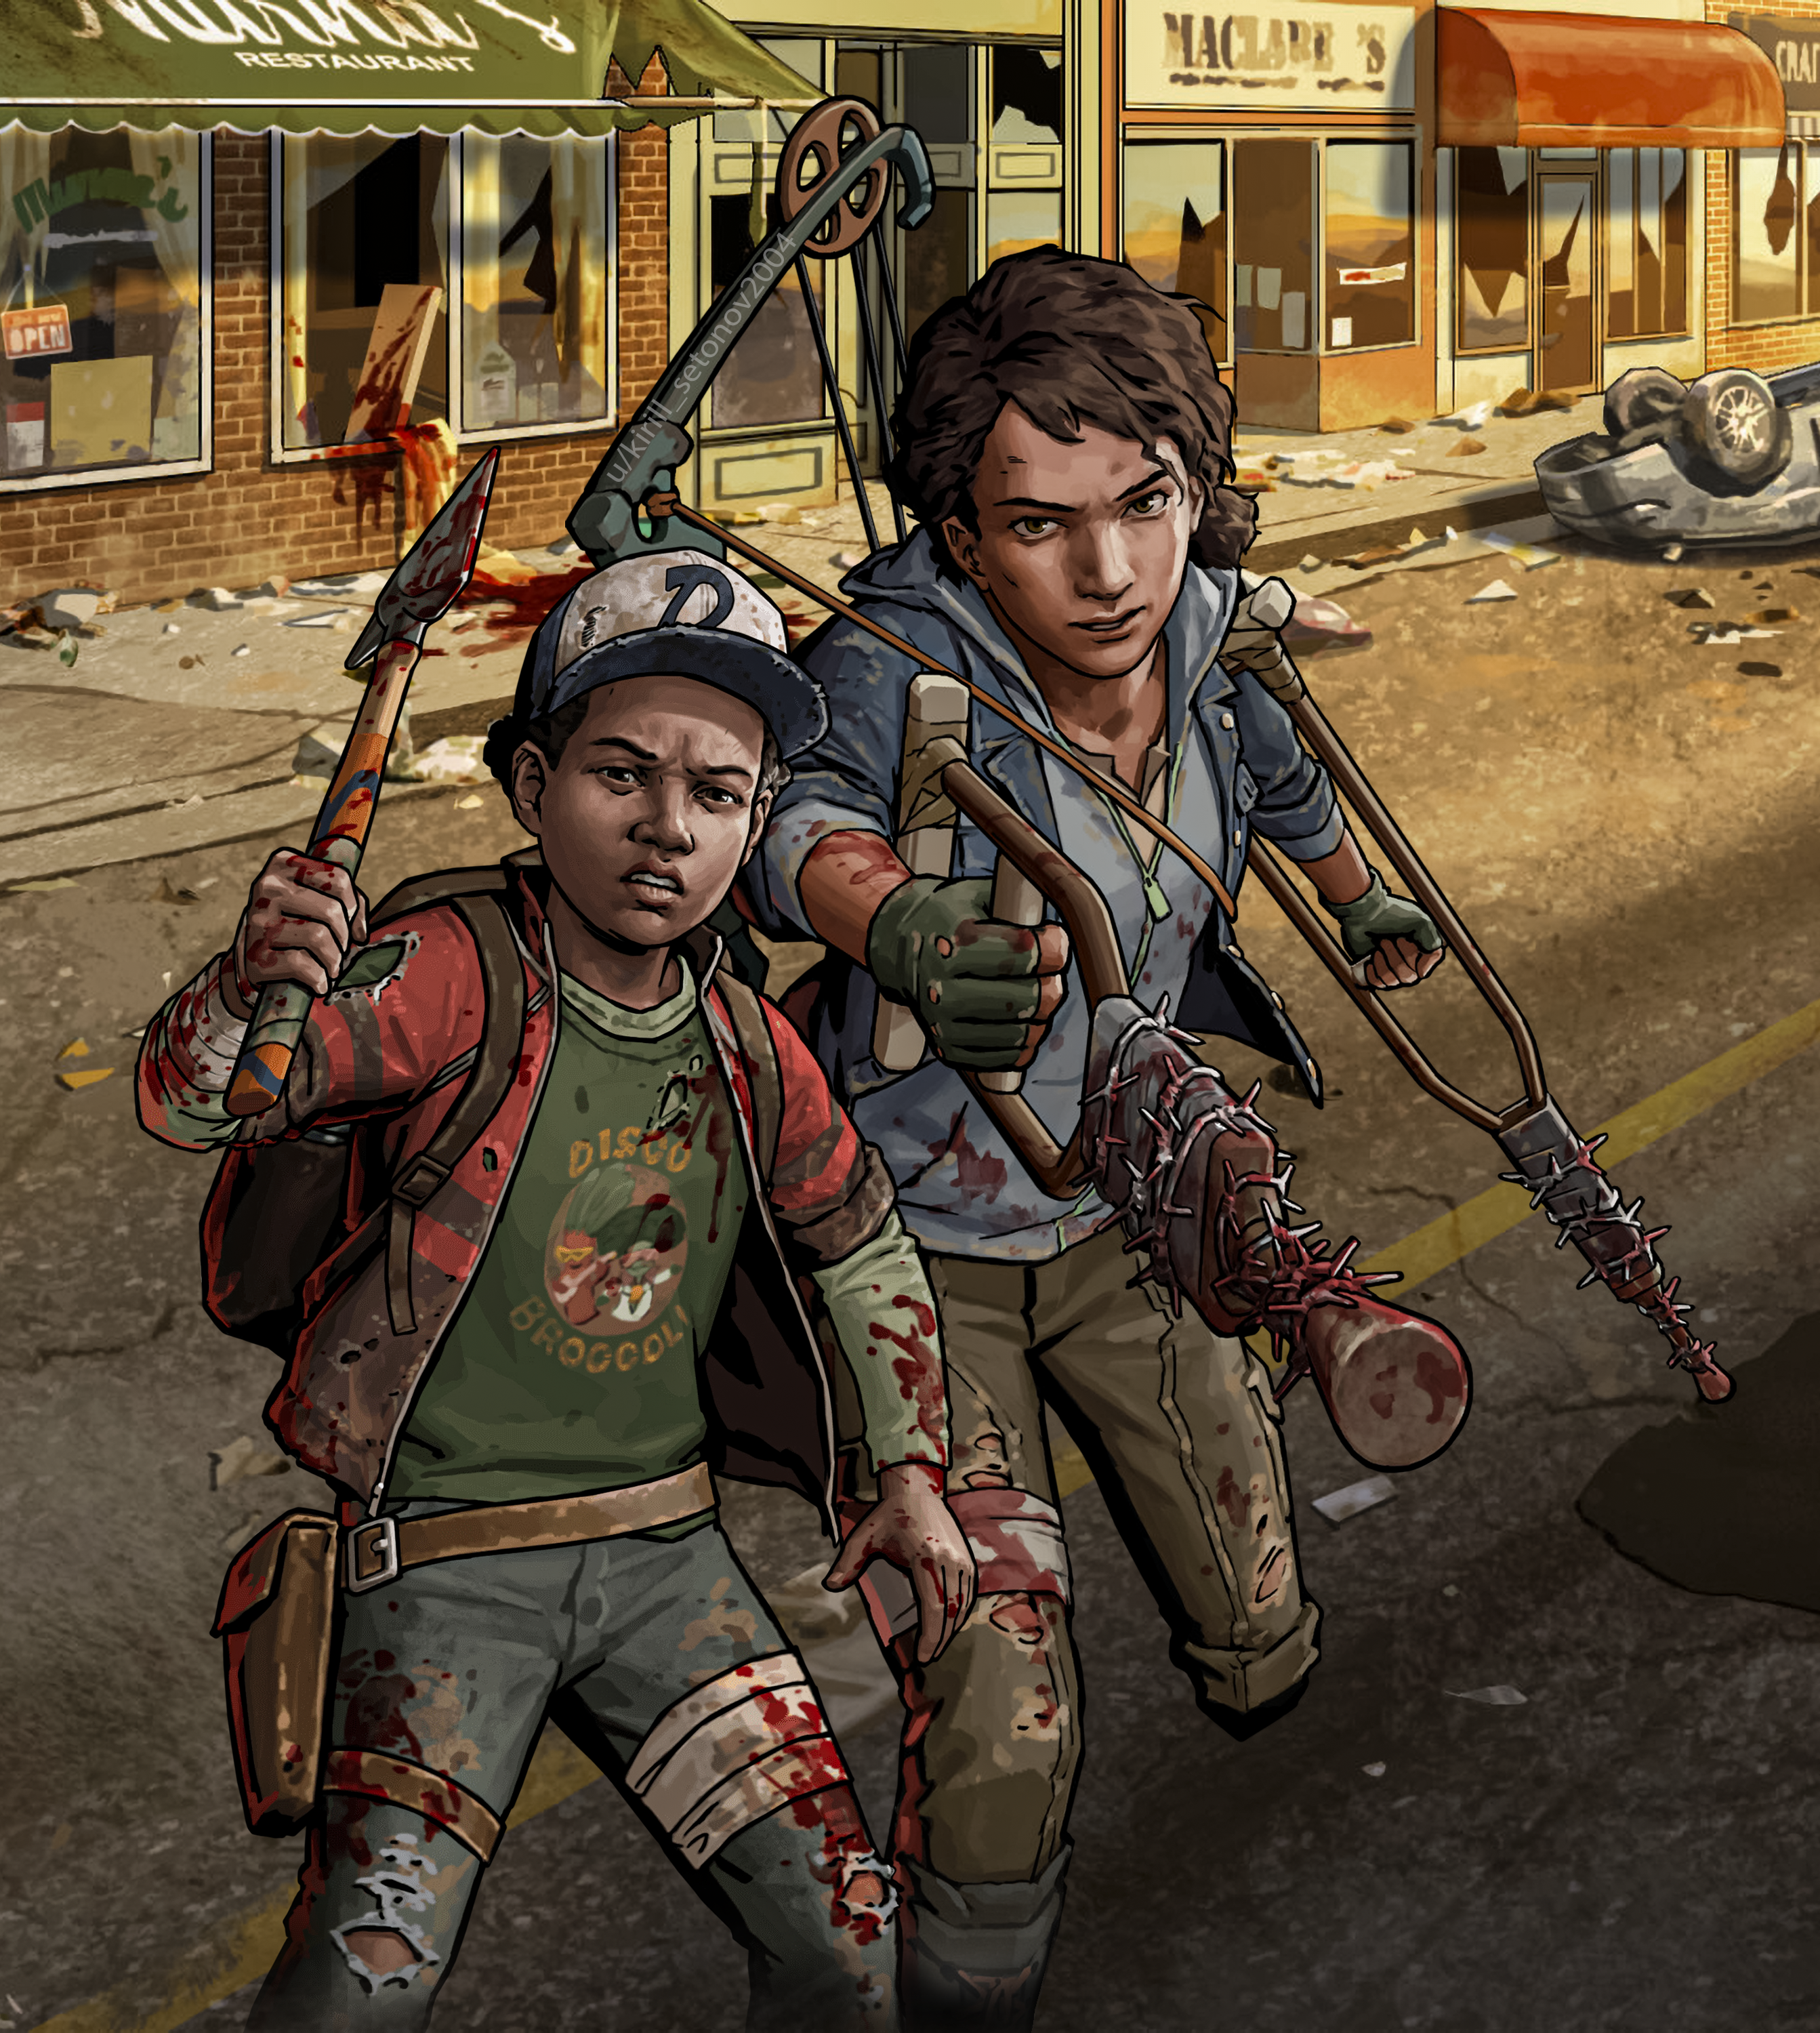 TWDRTS Clementine and AJ   Phone Wallpaper 2686x3000